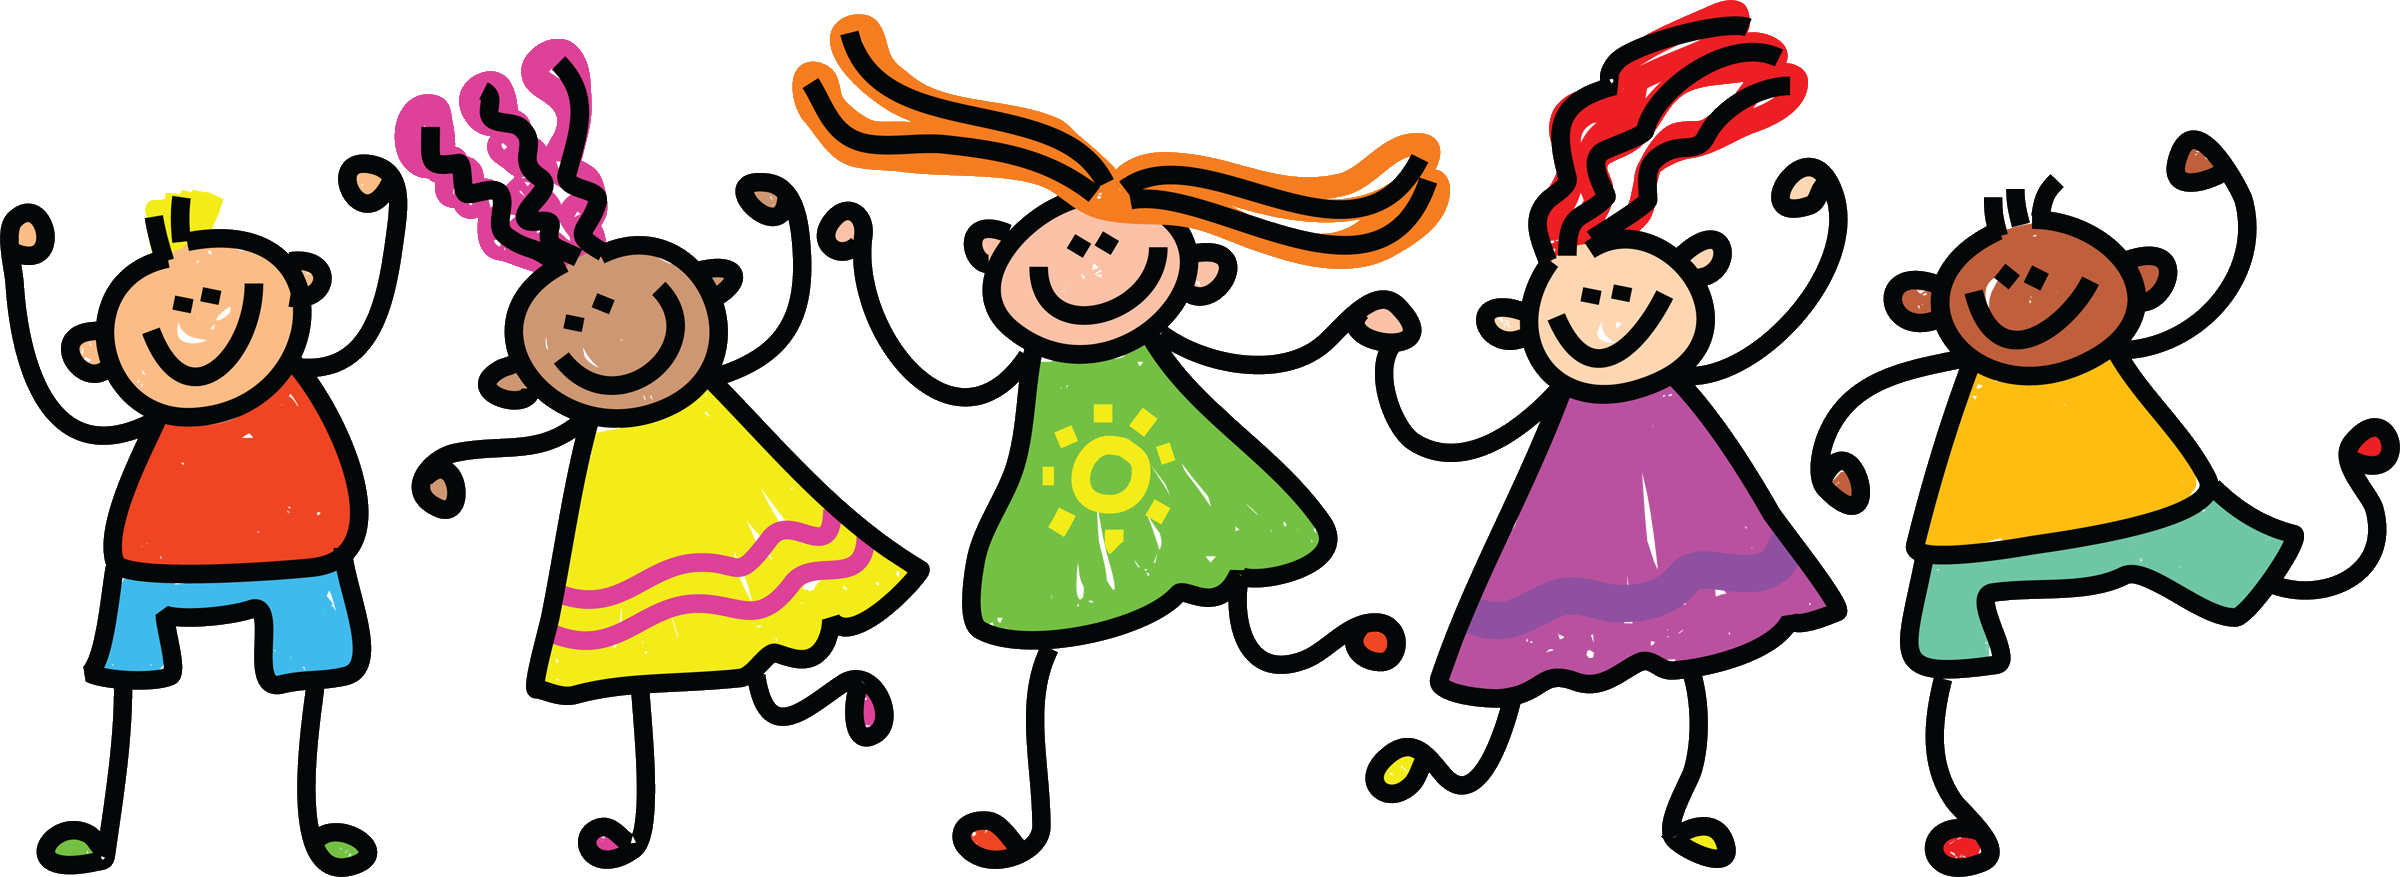 Party clipart kids disco No Events Kidz Playhouse background